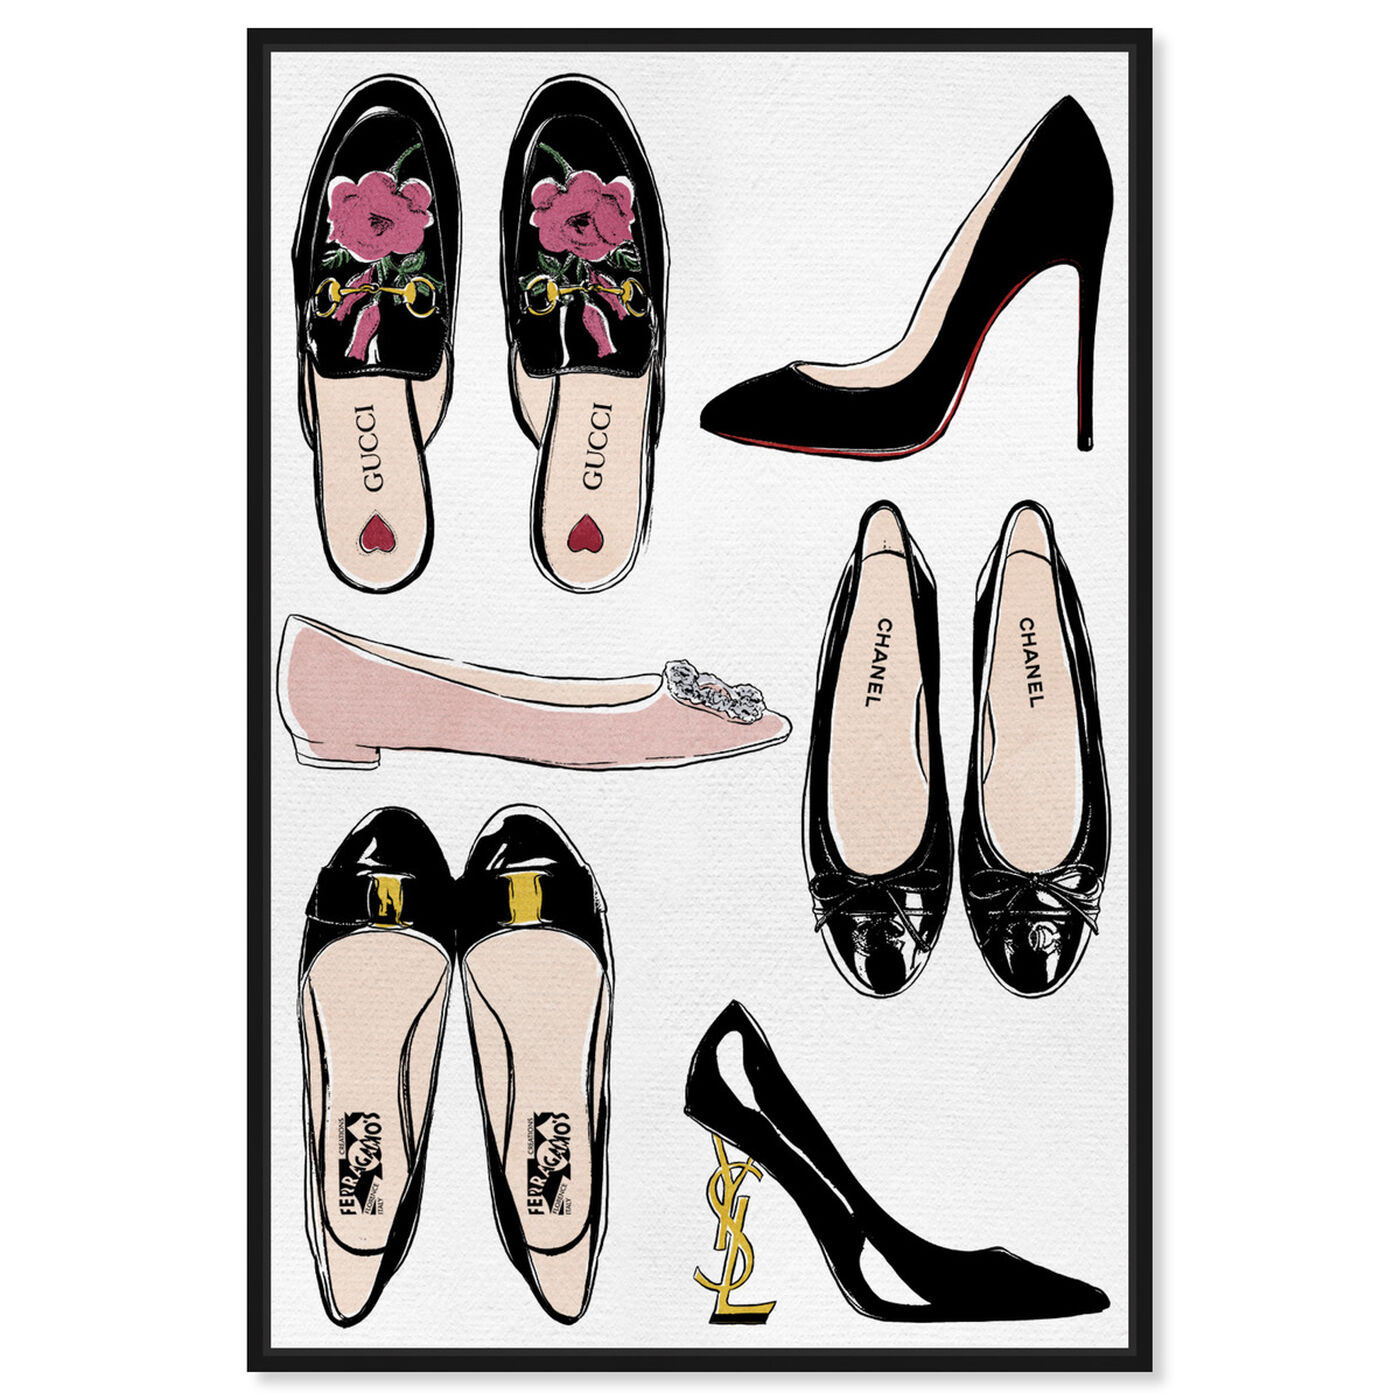 Front view of My Luxe Shoe Collection featuring fashion and glam and shoes art.